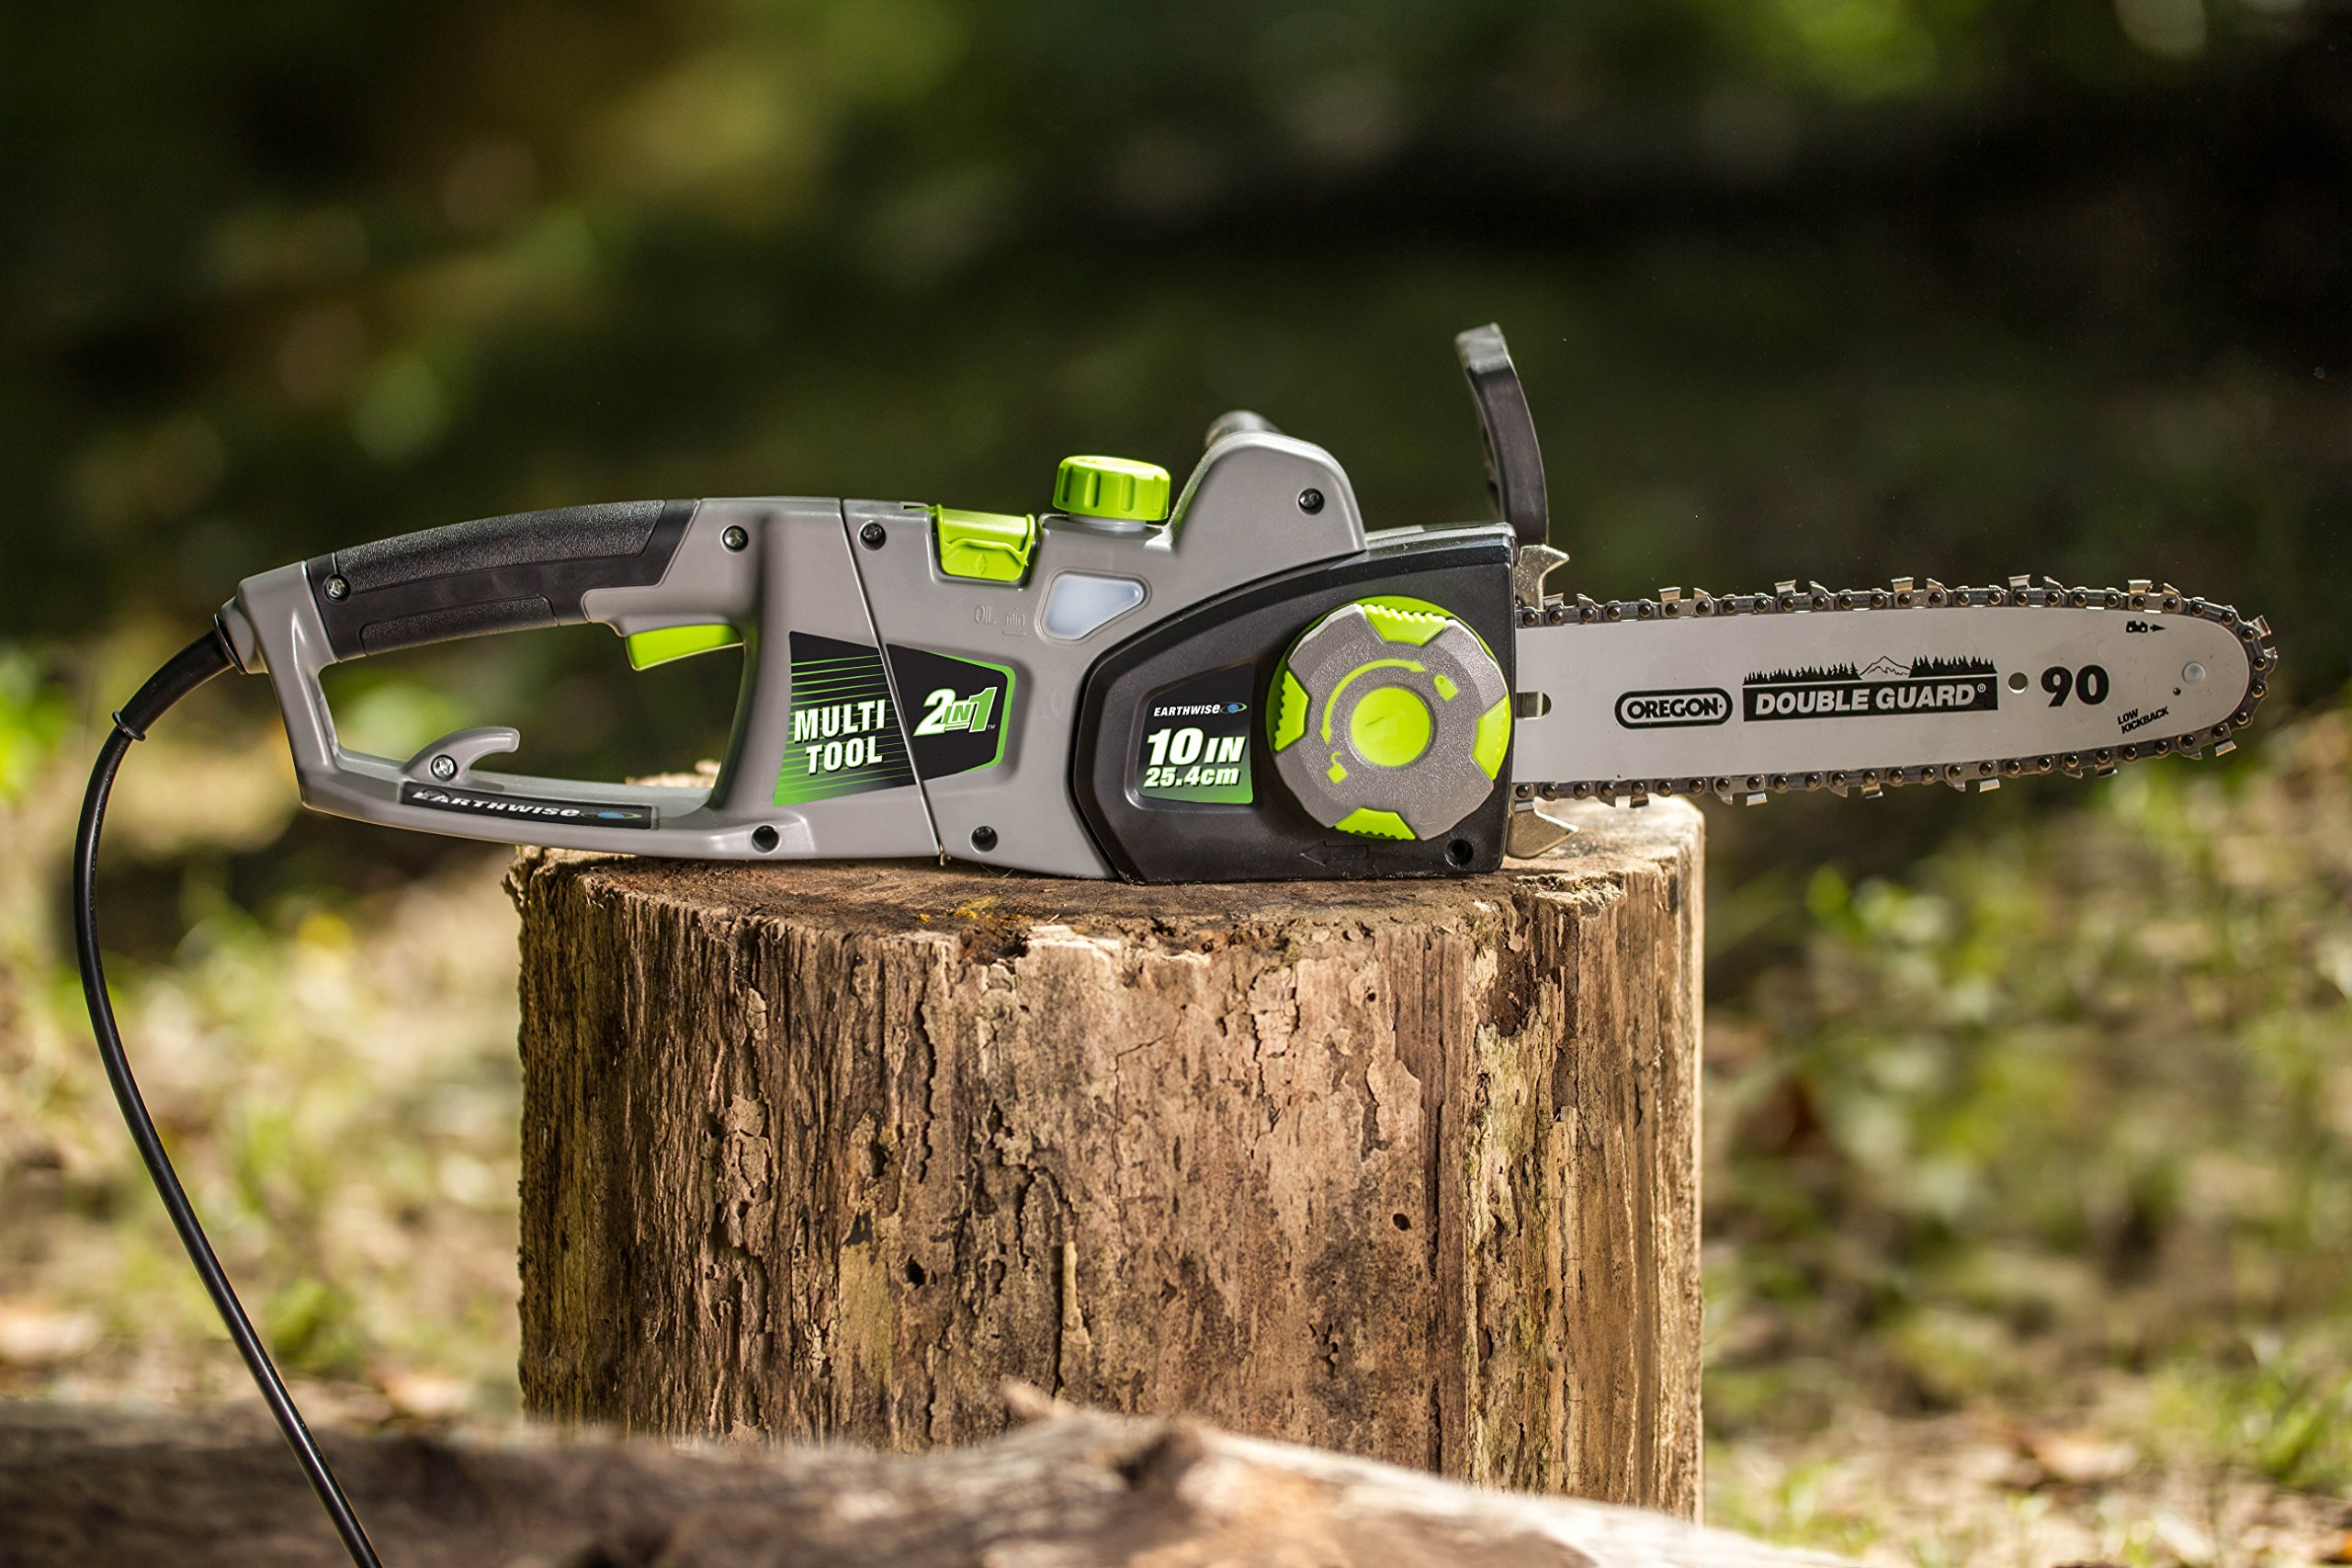 Earthwise cvps43010 2 in 1 corded convertible chainsaw pole saw earthwise cvps43010 2 in 1 corded convertible chainsaw pole saw 10 inch oregon bar and chain 7 amp motor greentooth Image collections